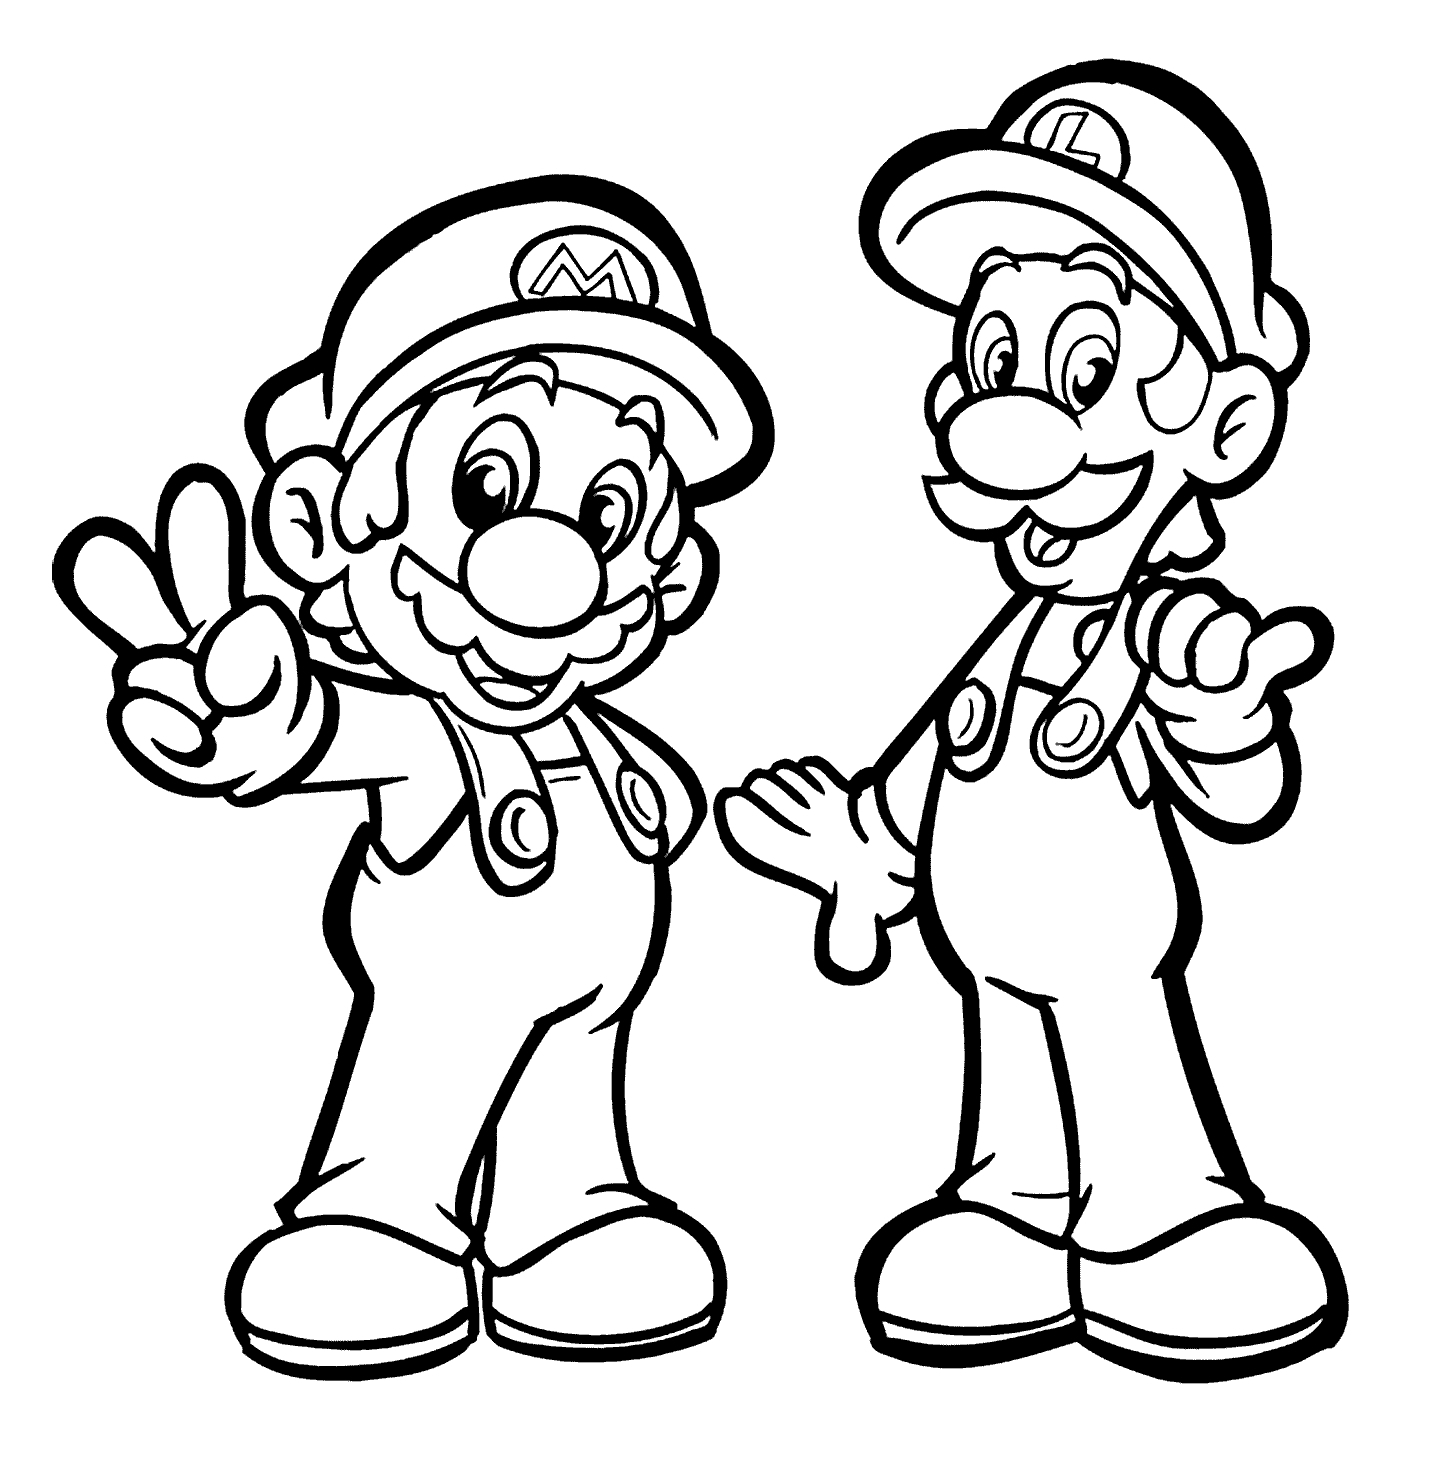 1432x1483 Mario And Luigi Drawing Mario And Luigi Coloring Pages For Kids